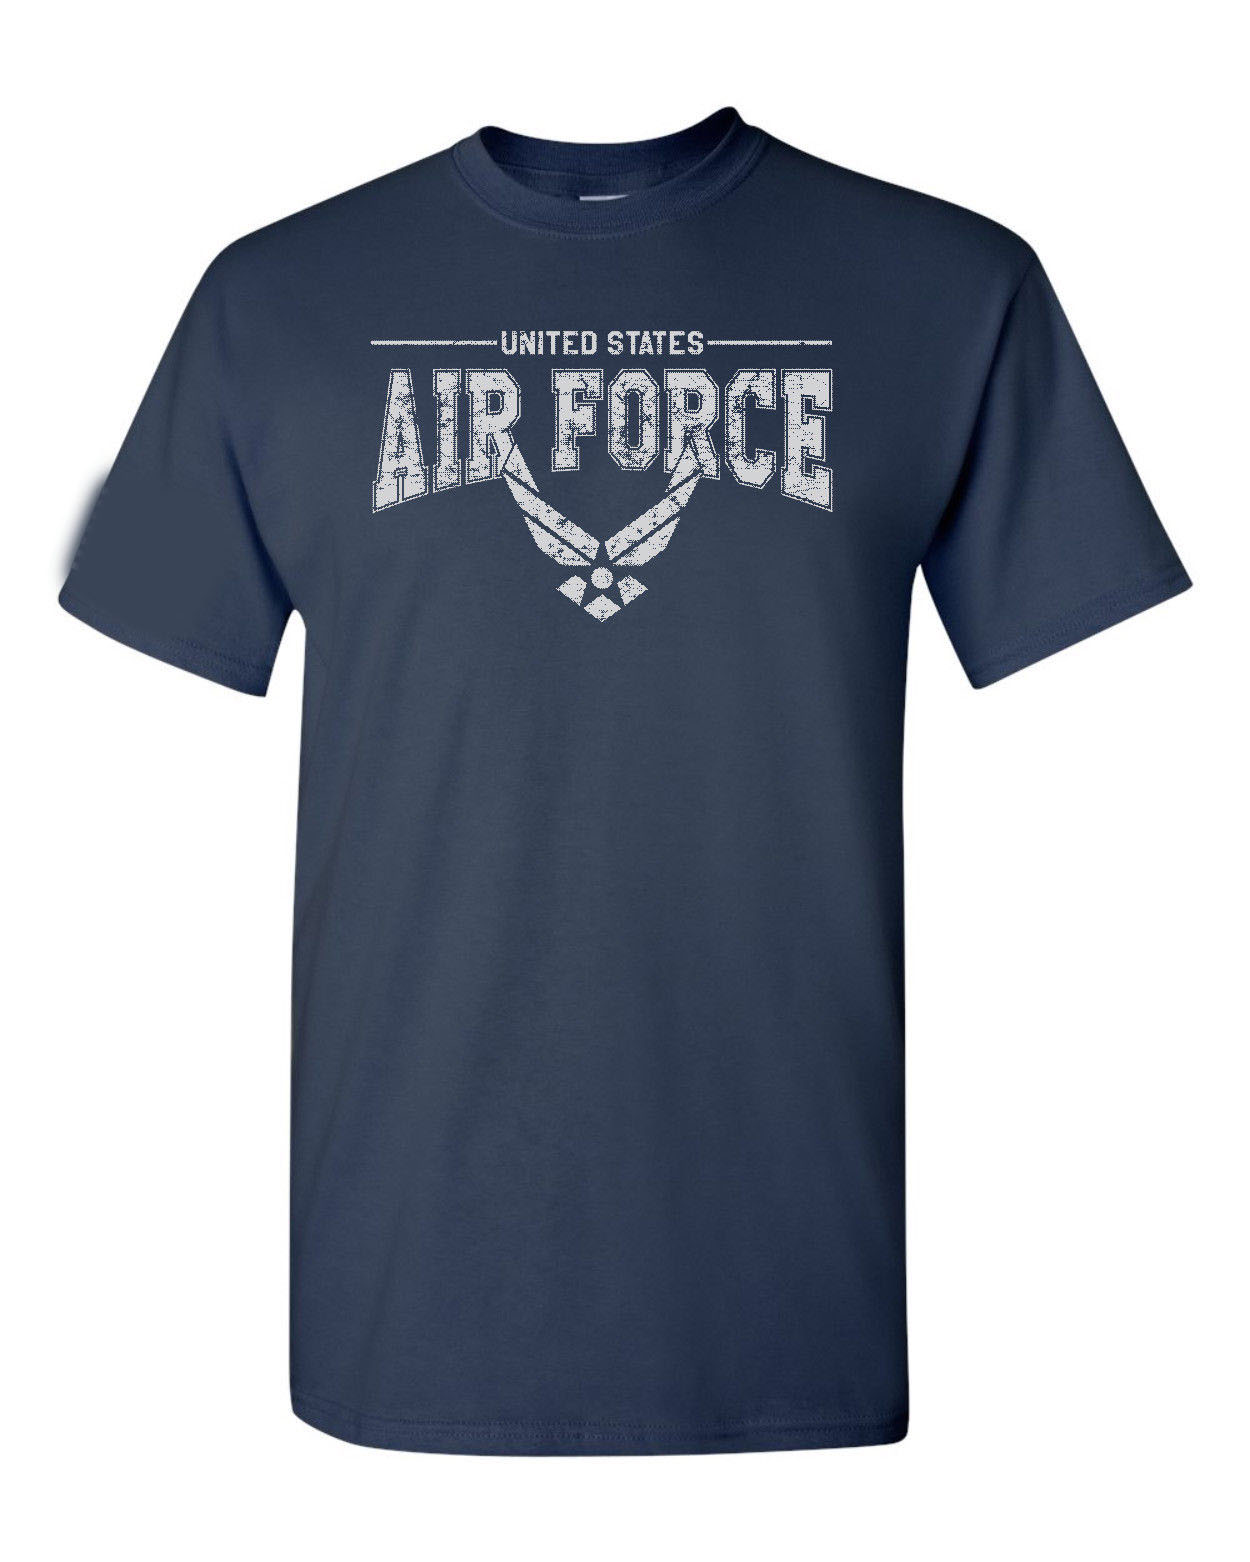 2019 Fashion Usa Us Air Force Logo Us Flag Sleeve American Military <font><b>Usaf</b></font> Men'S Tee <font><b>Shirt</b></font> Tees image